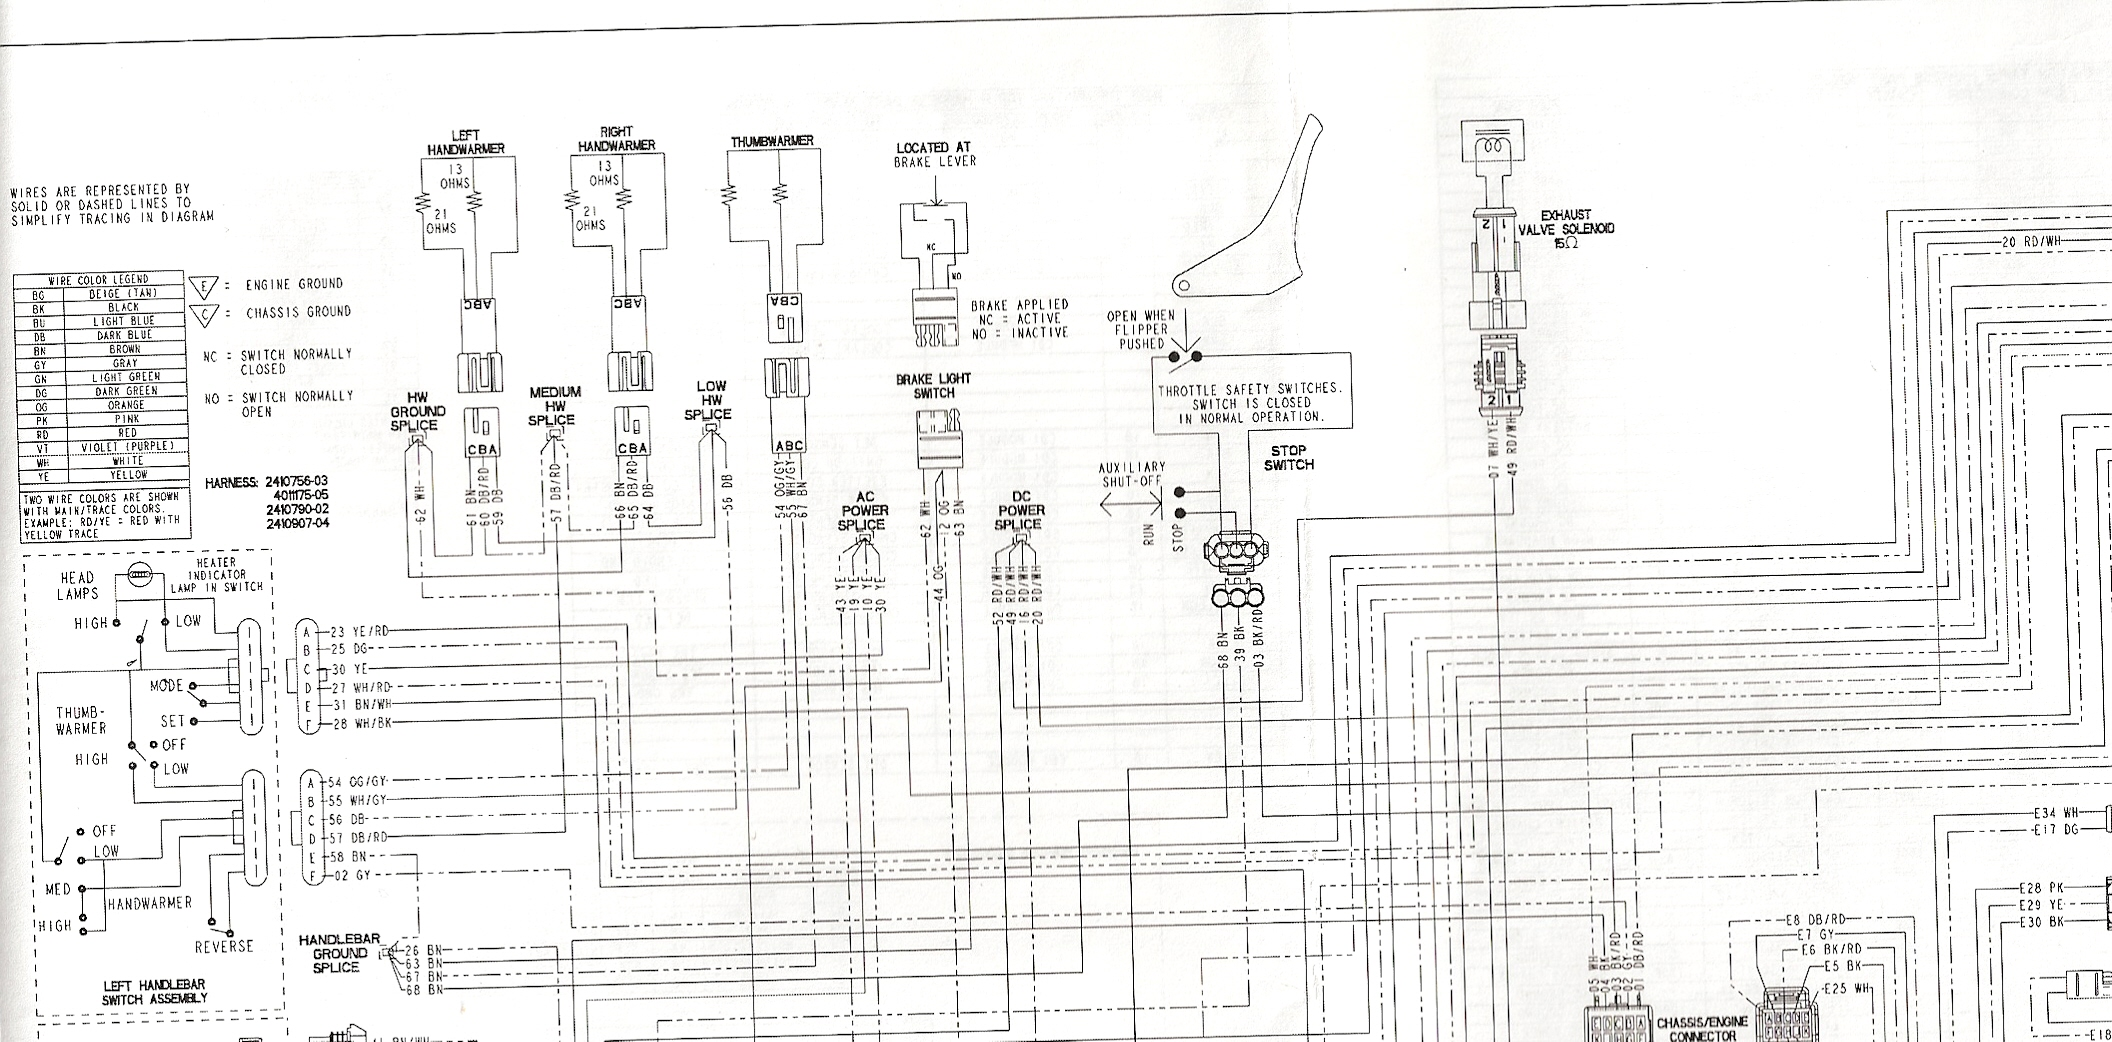 wiring diagram for polaris ranger 800 xp